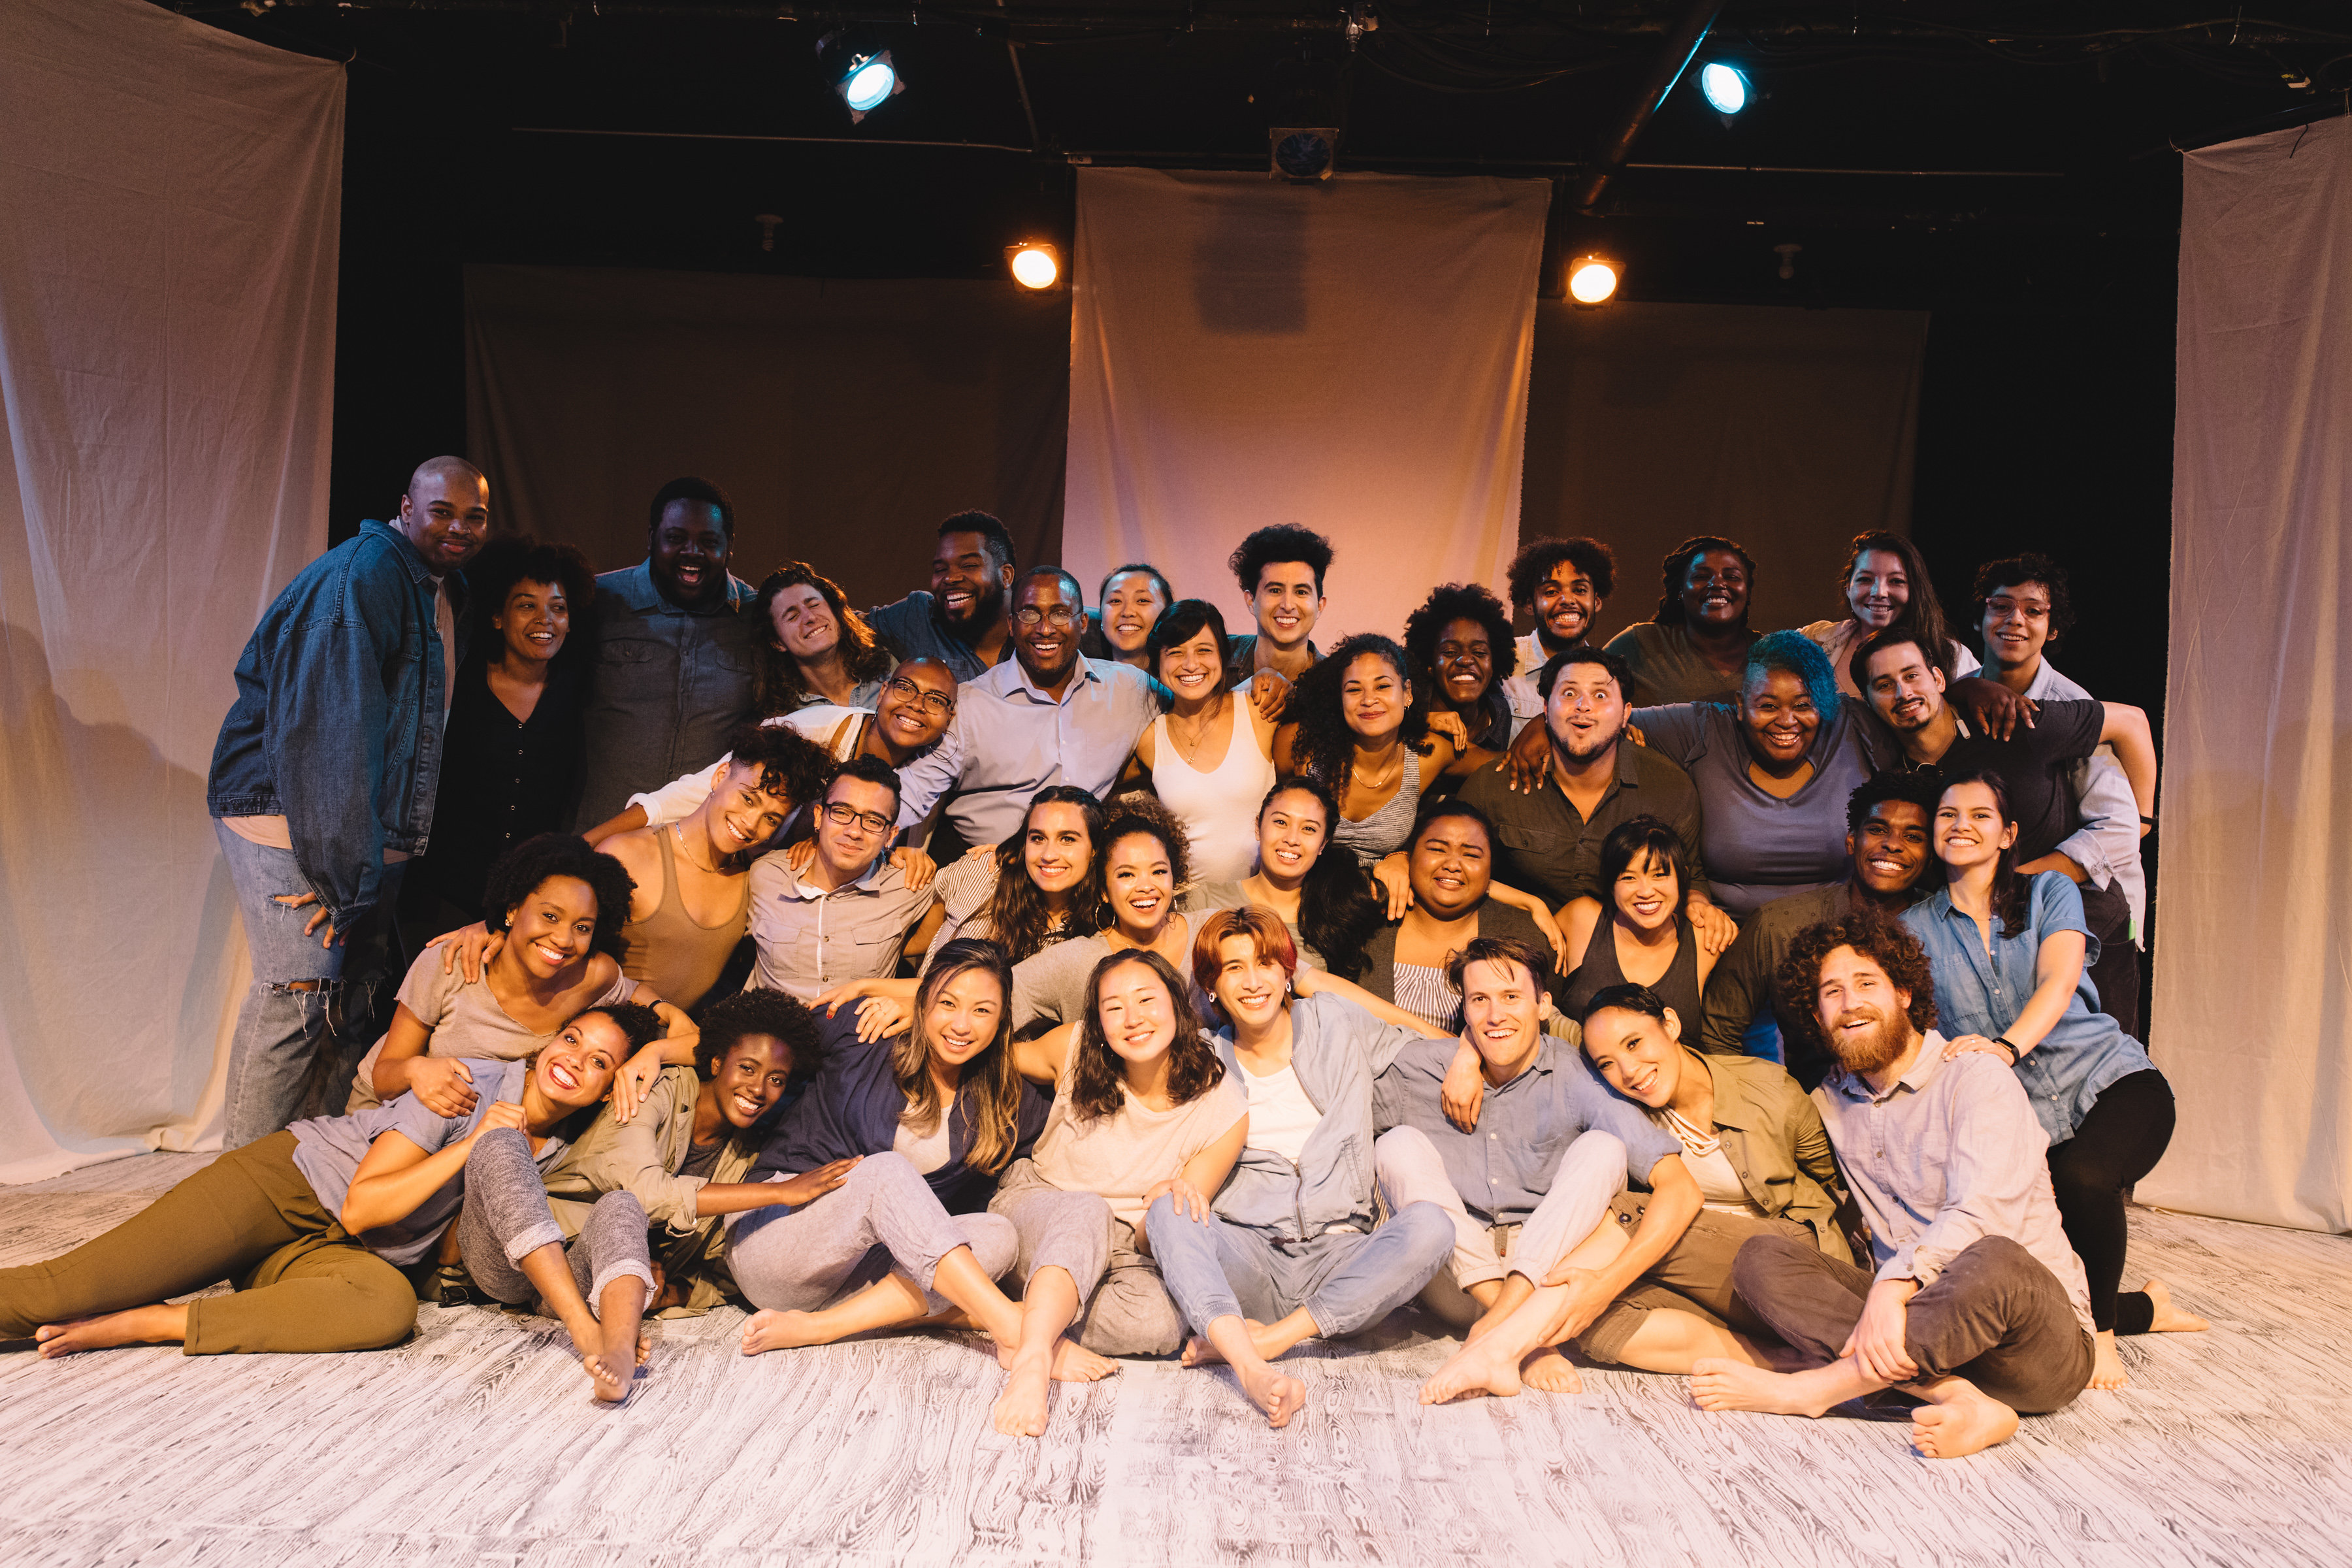 A group of a diverse group of theater performers gather on stage.